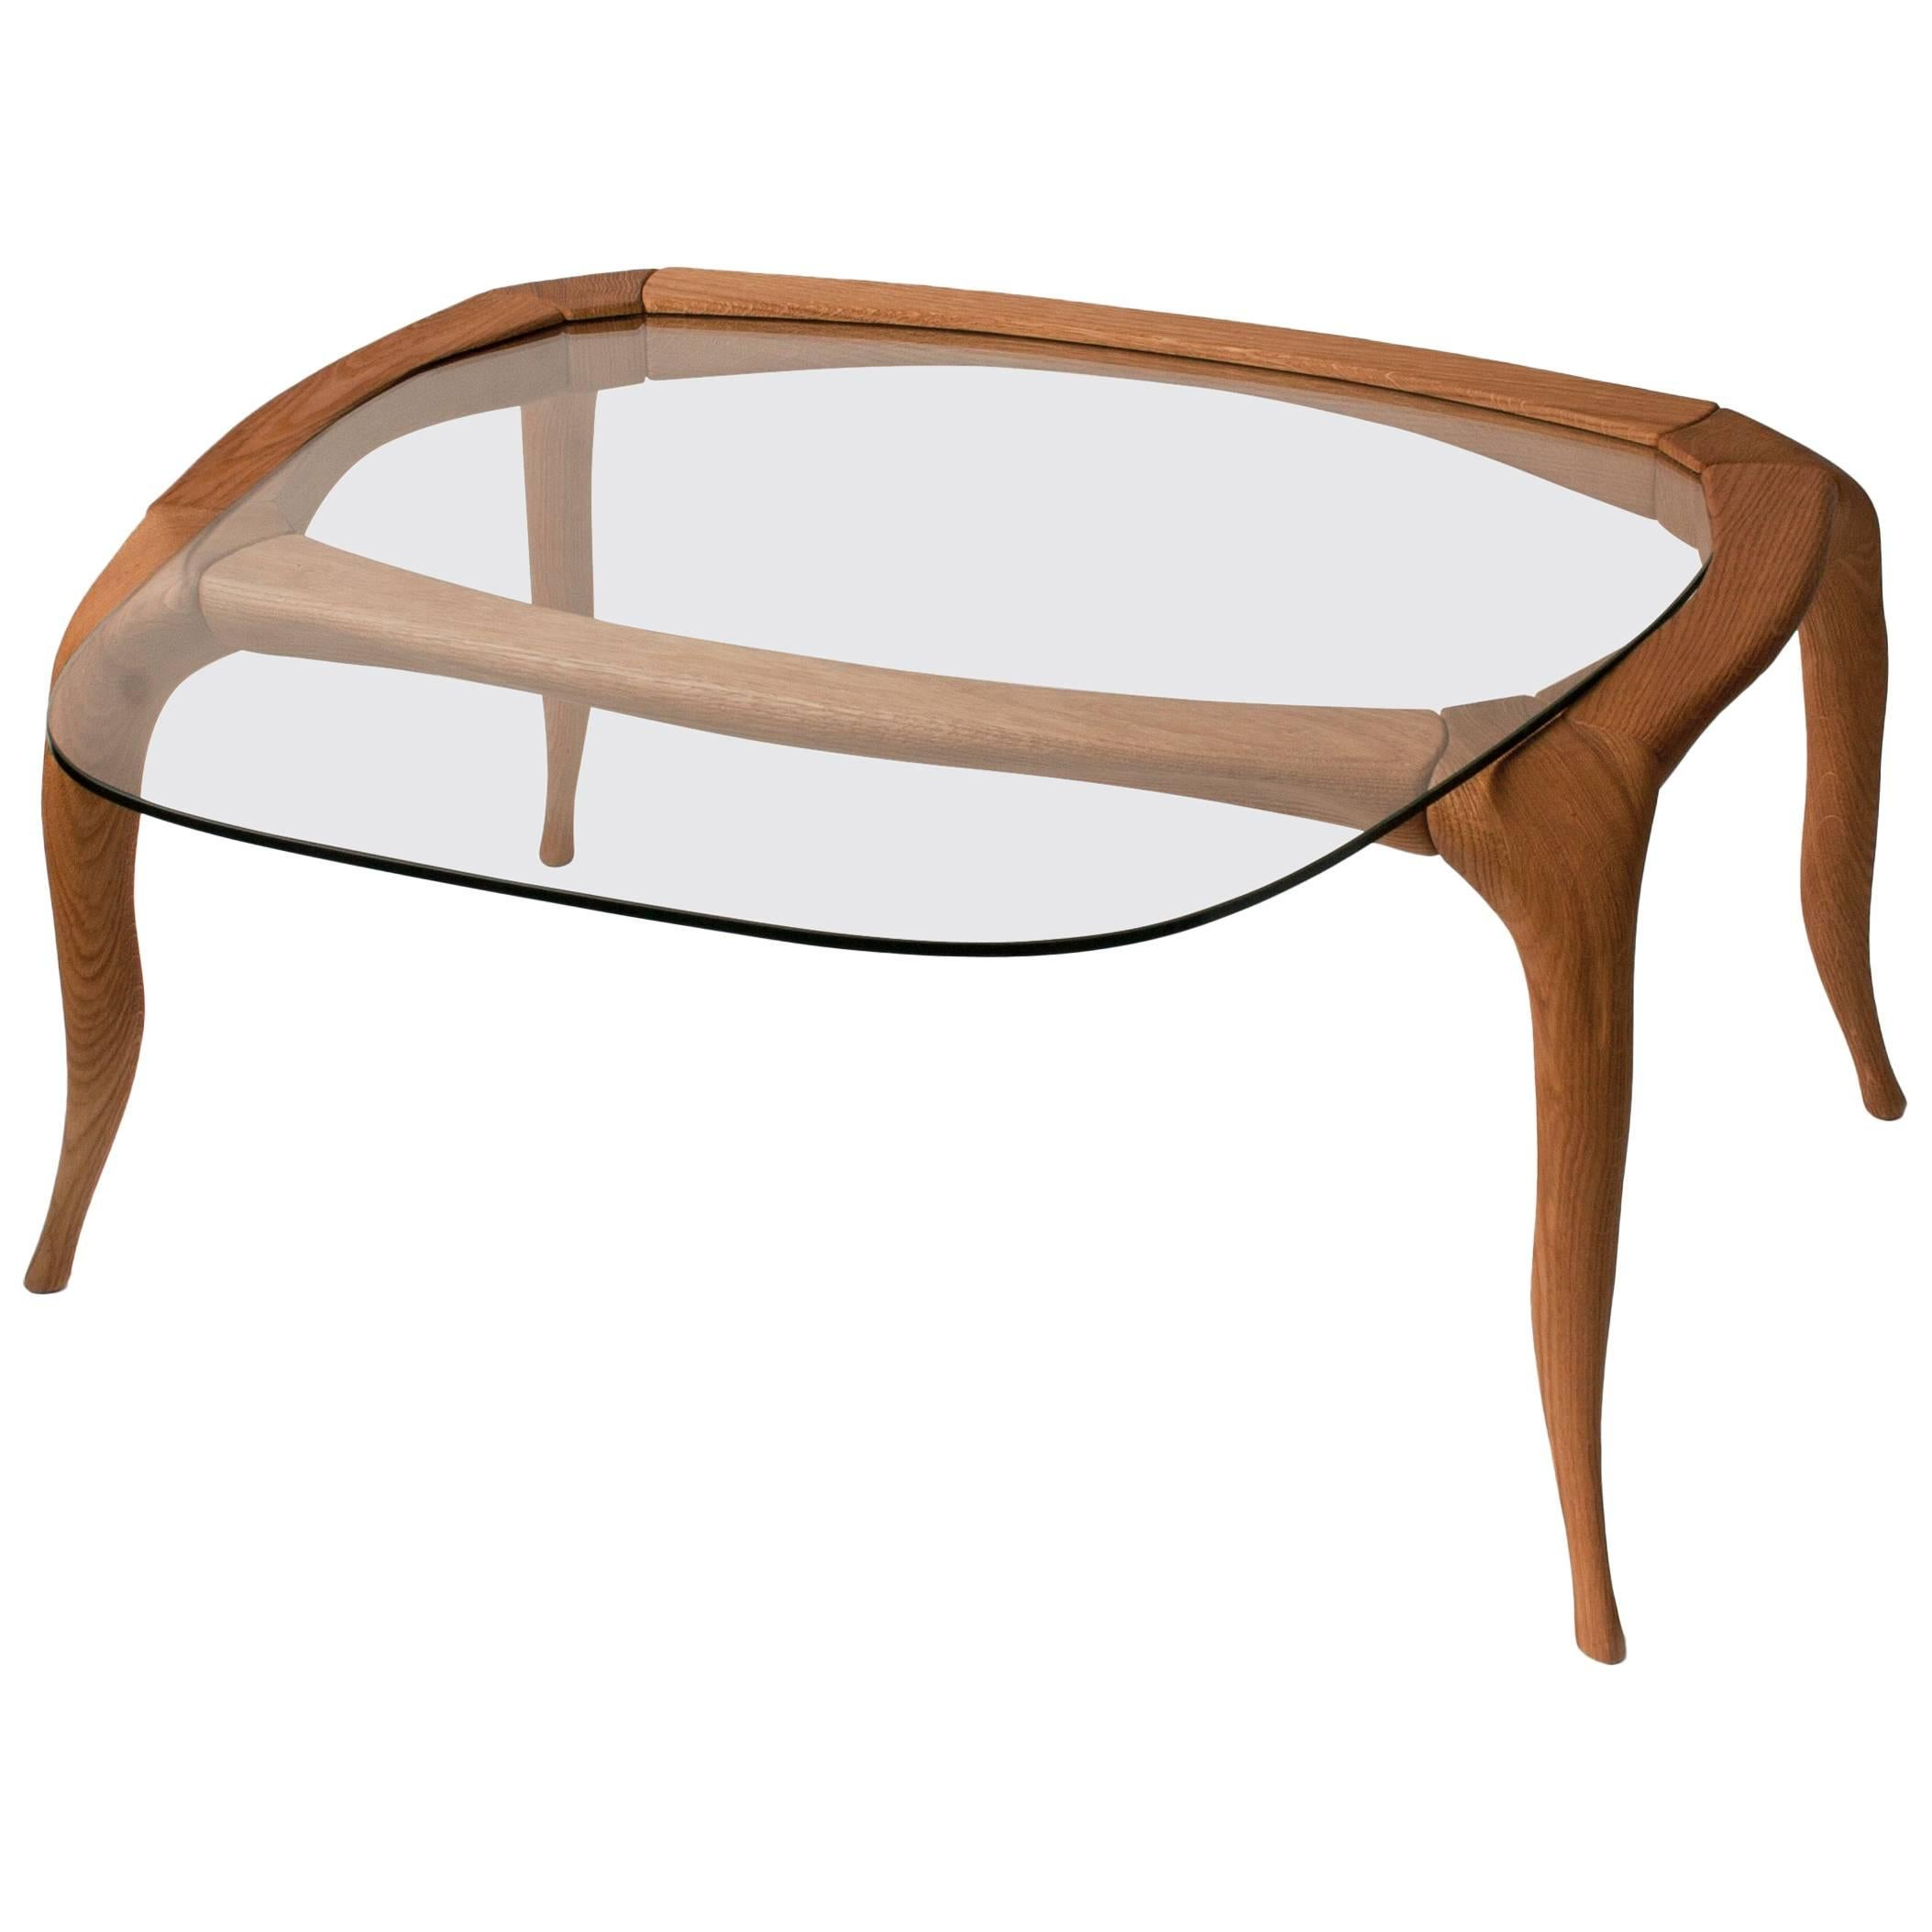 Domo - occasional table in English oak, designed by Nigel Coates